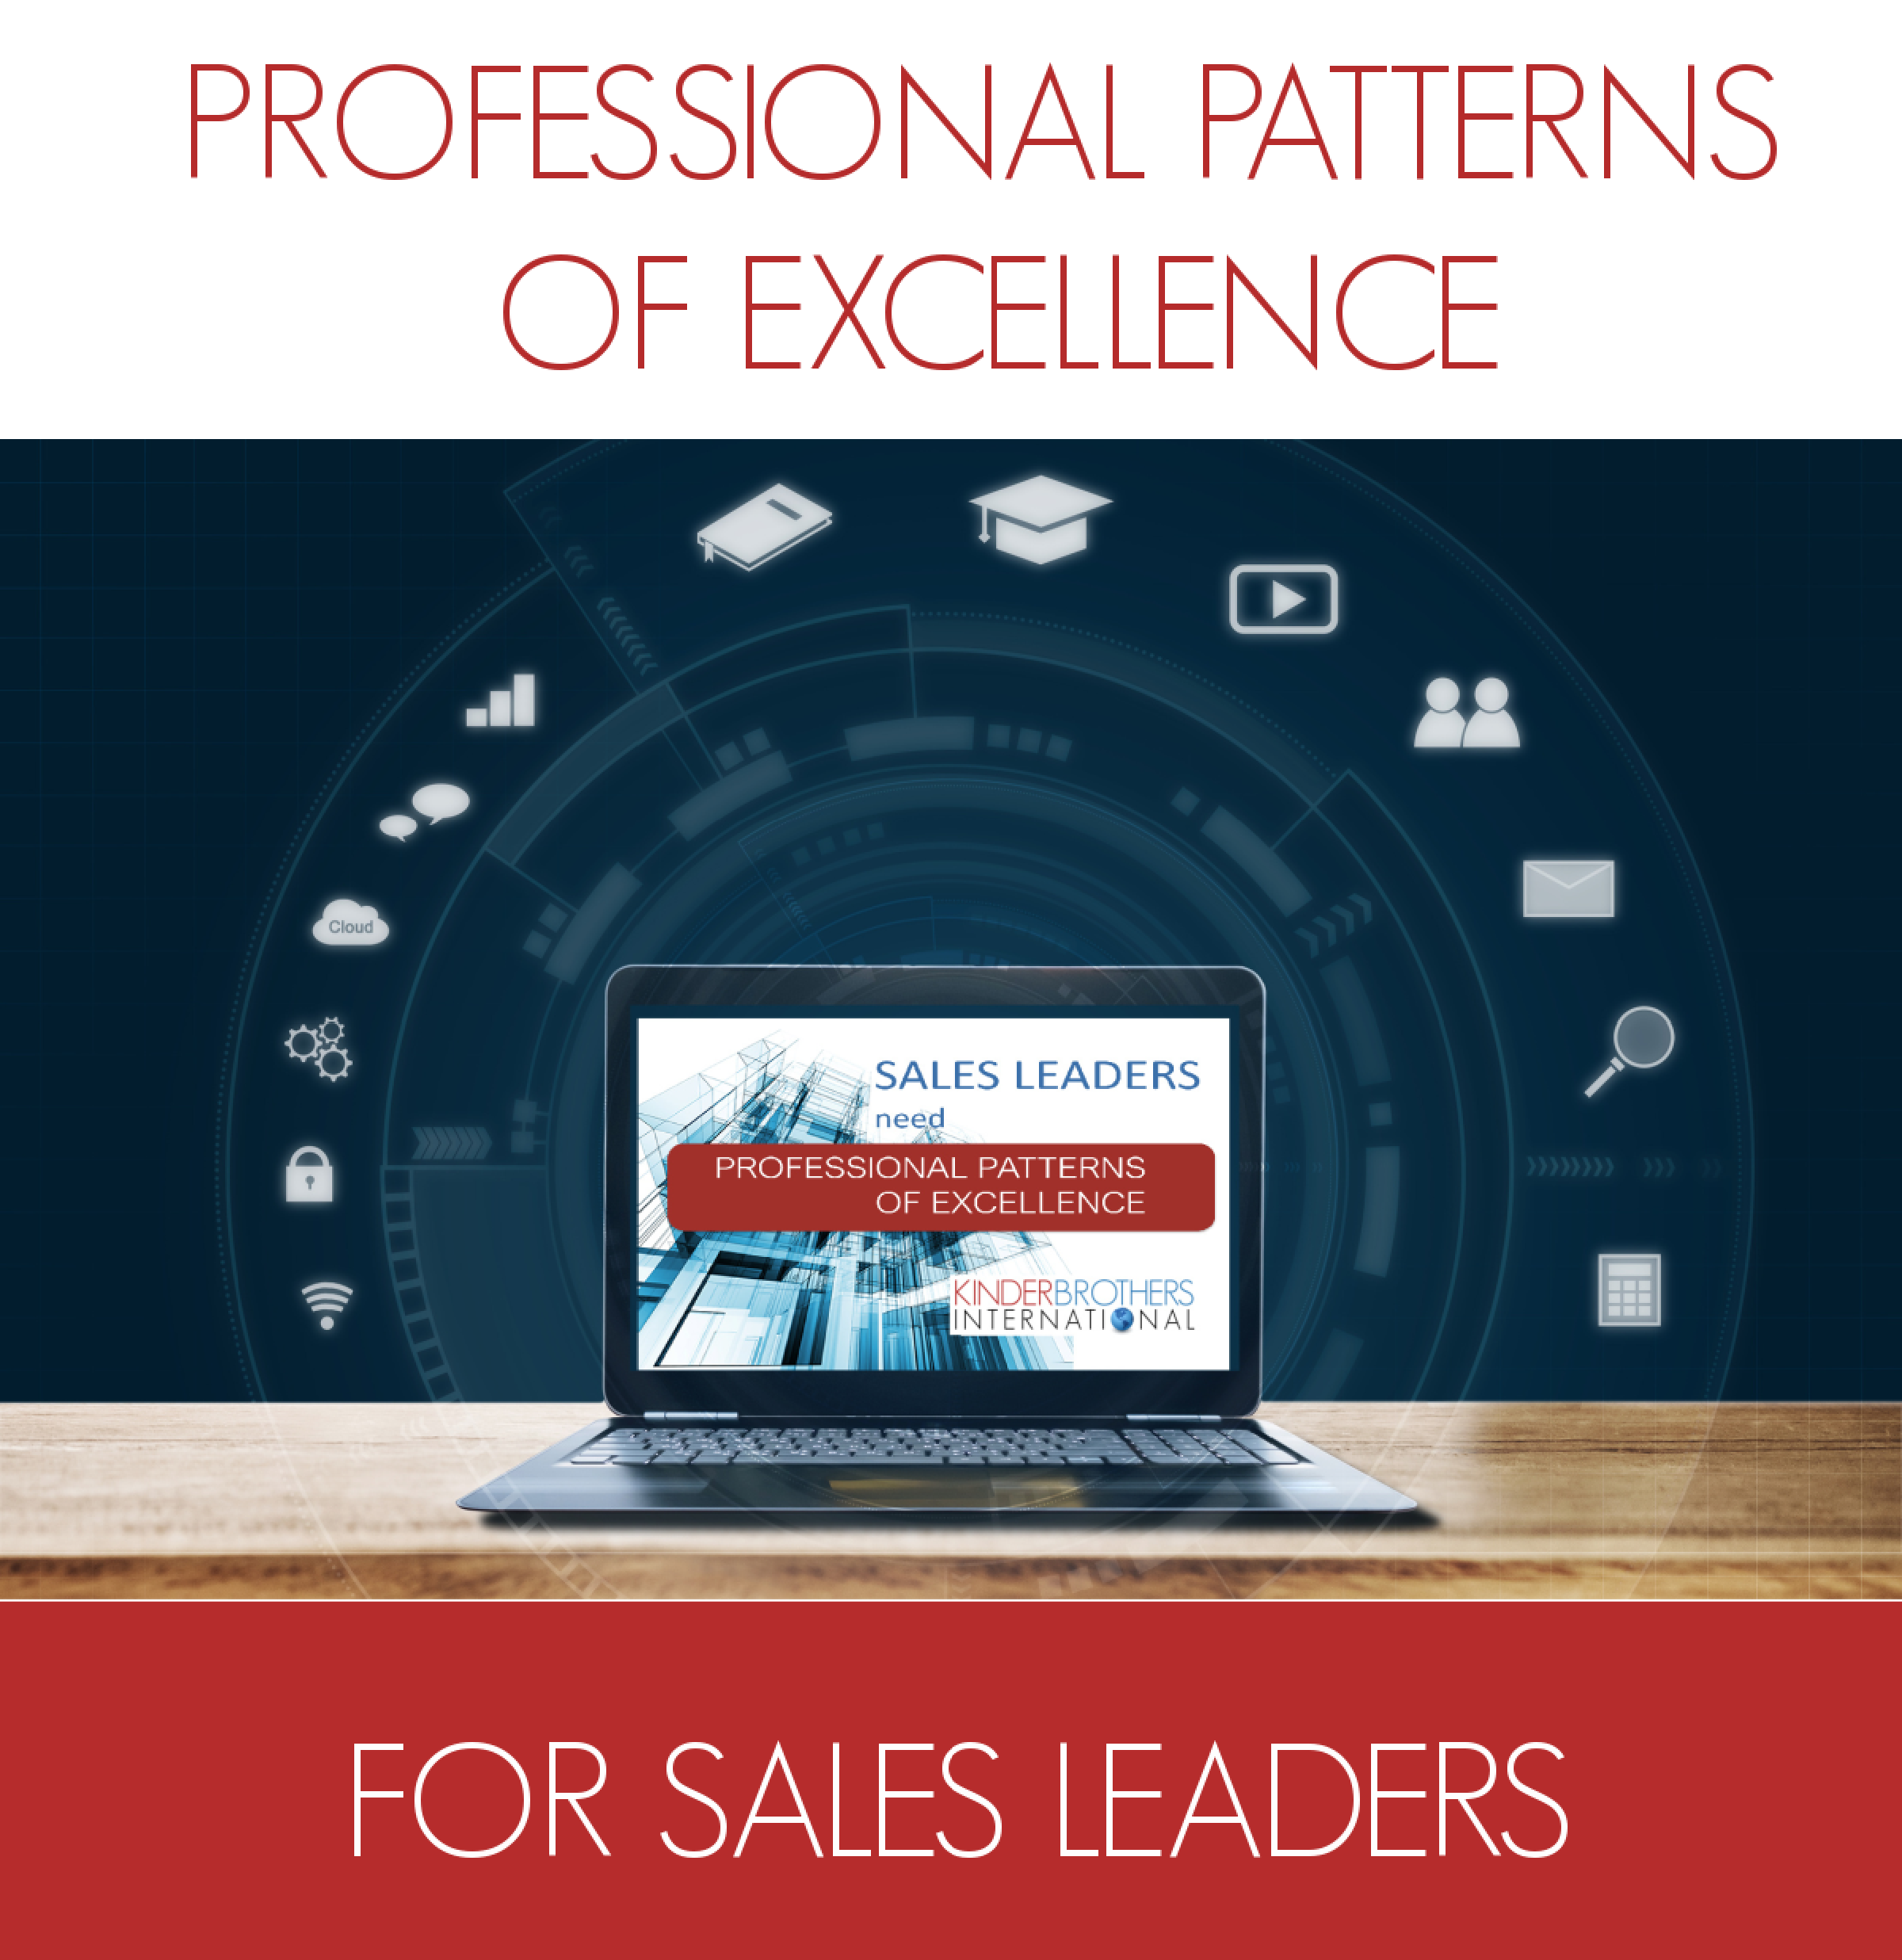 Professional Patterns of Excellence